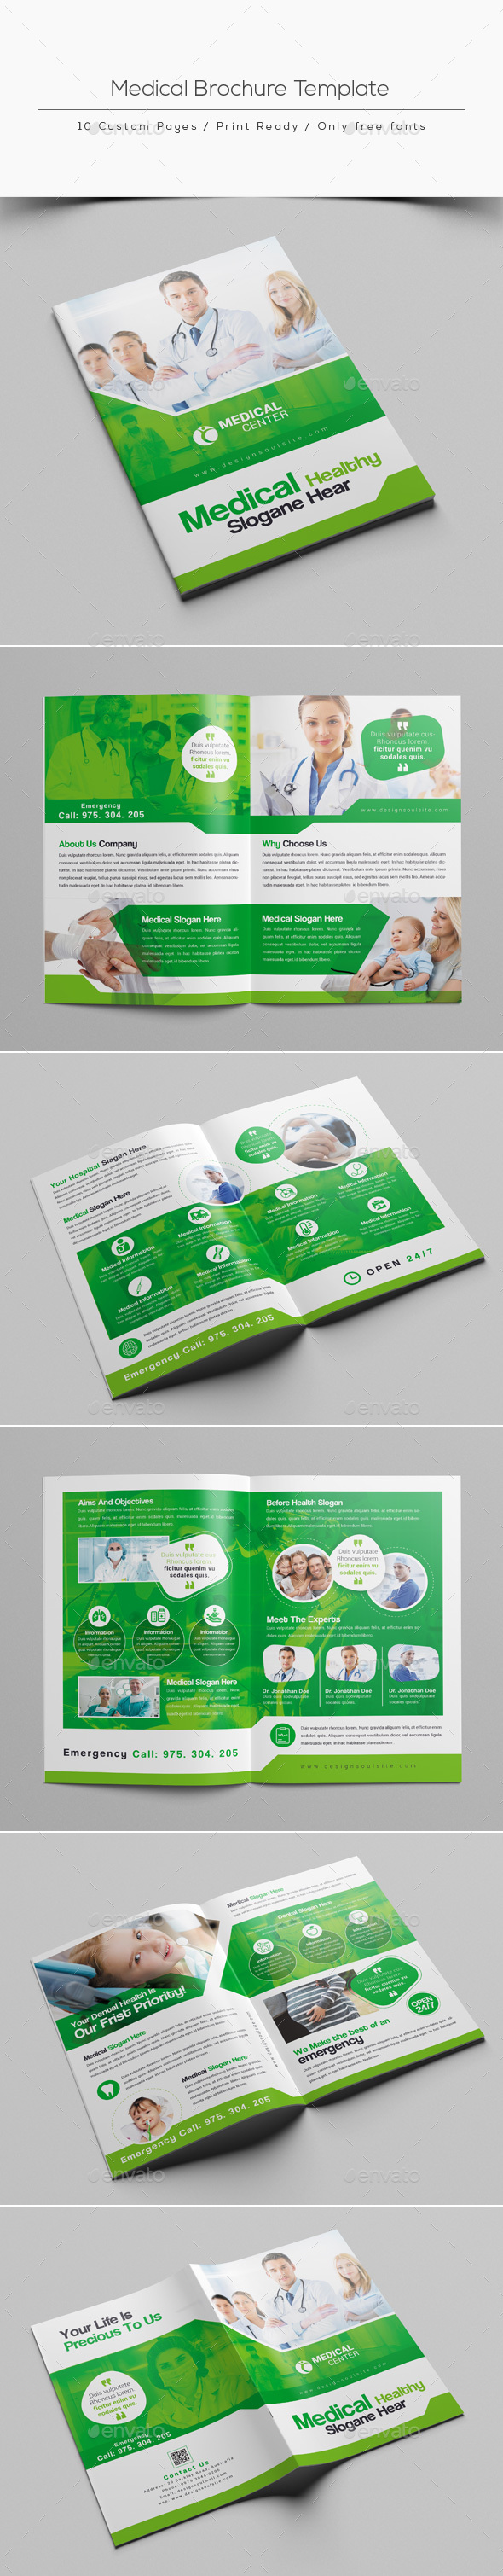 Medical Brochure Template - Corporate Brochures